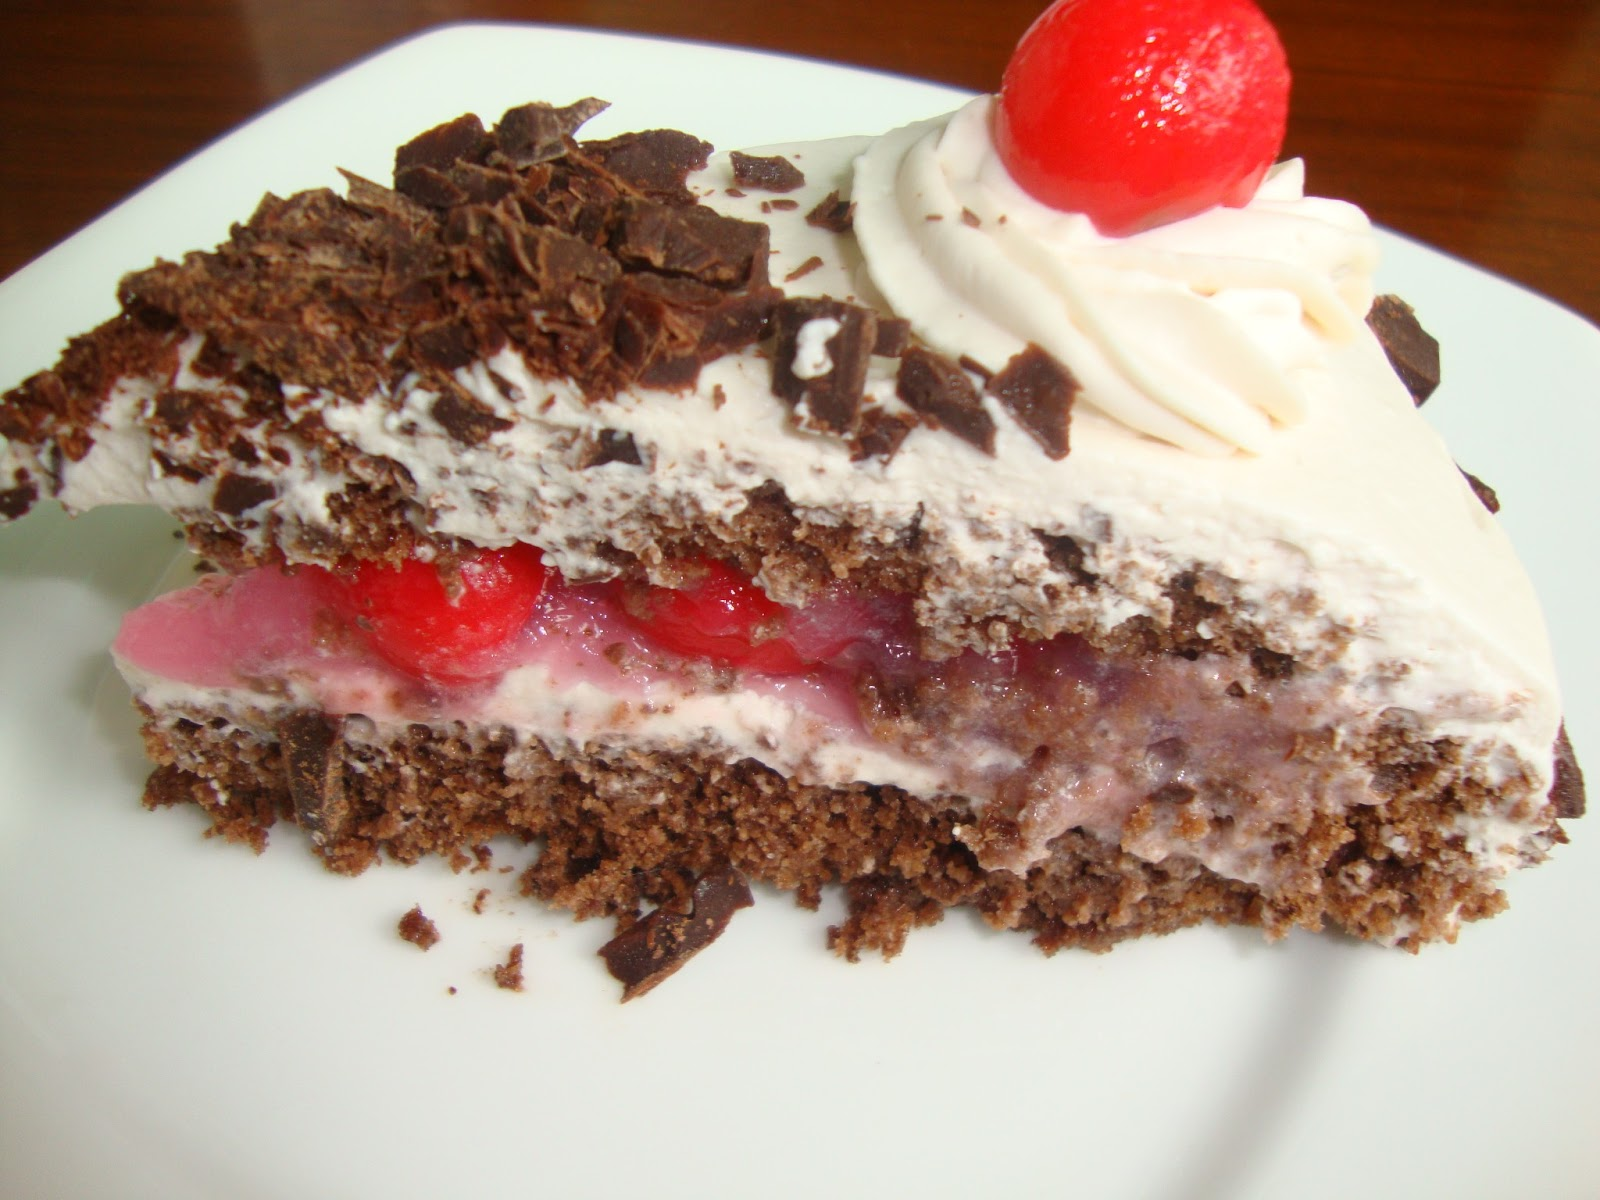 White Forest Cake Recipe In Pressure Cooker: Cooking Delights: Black Forest Cake